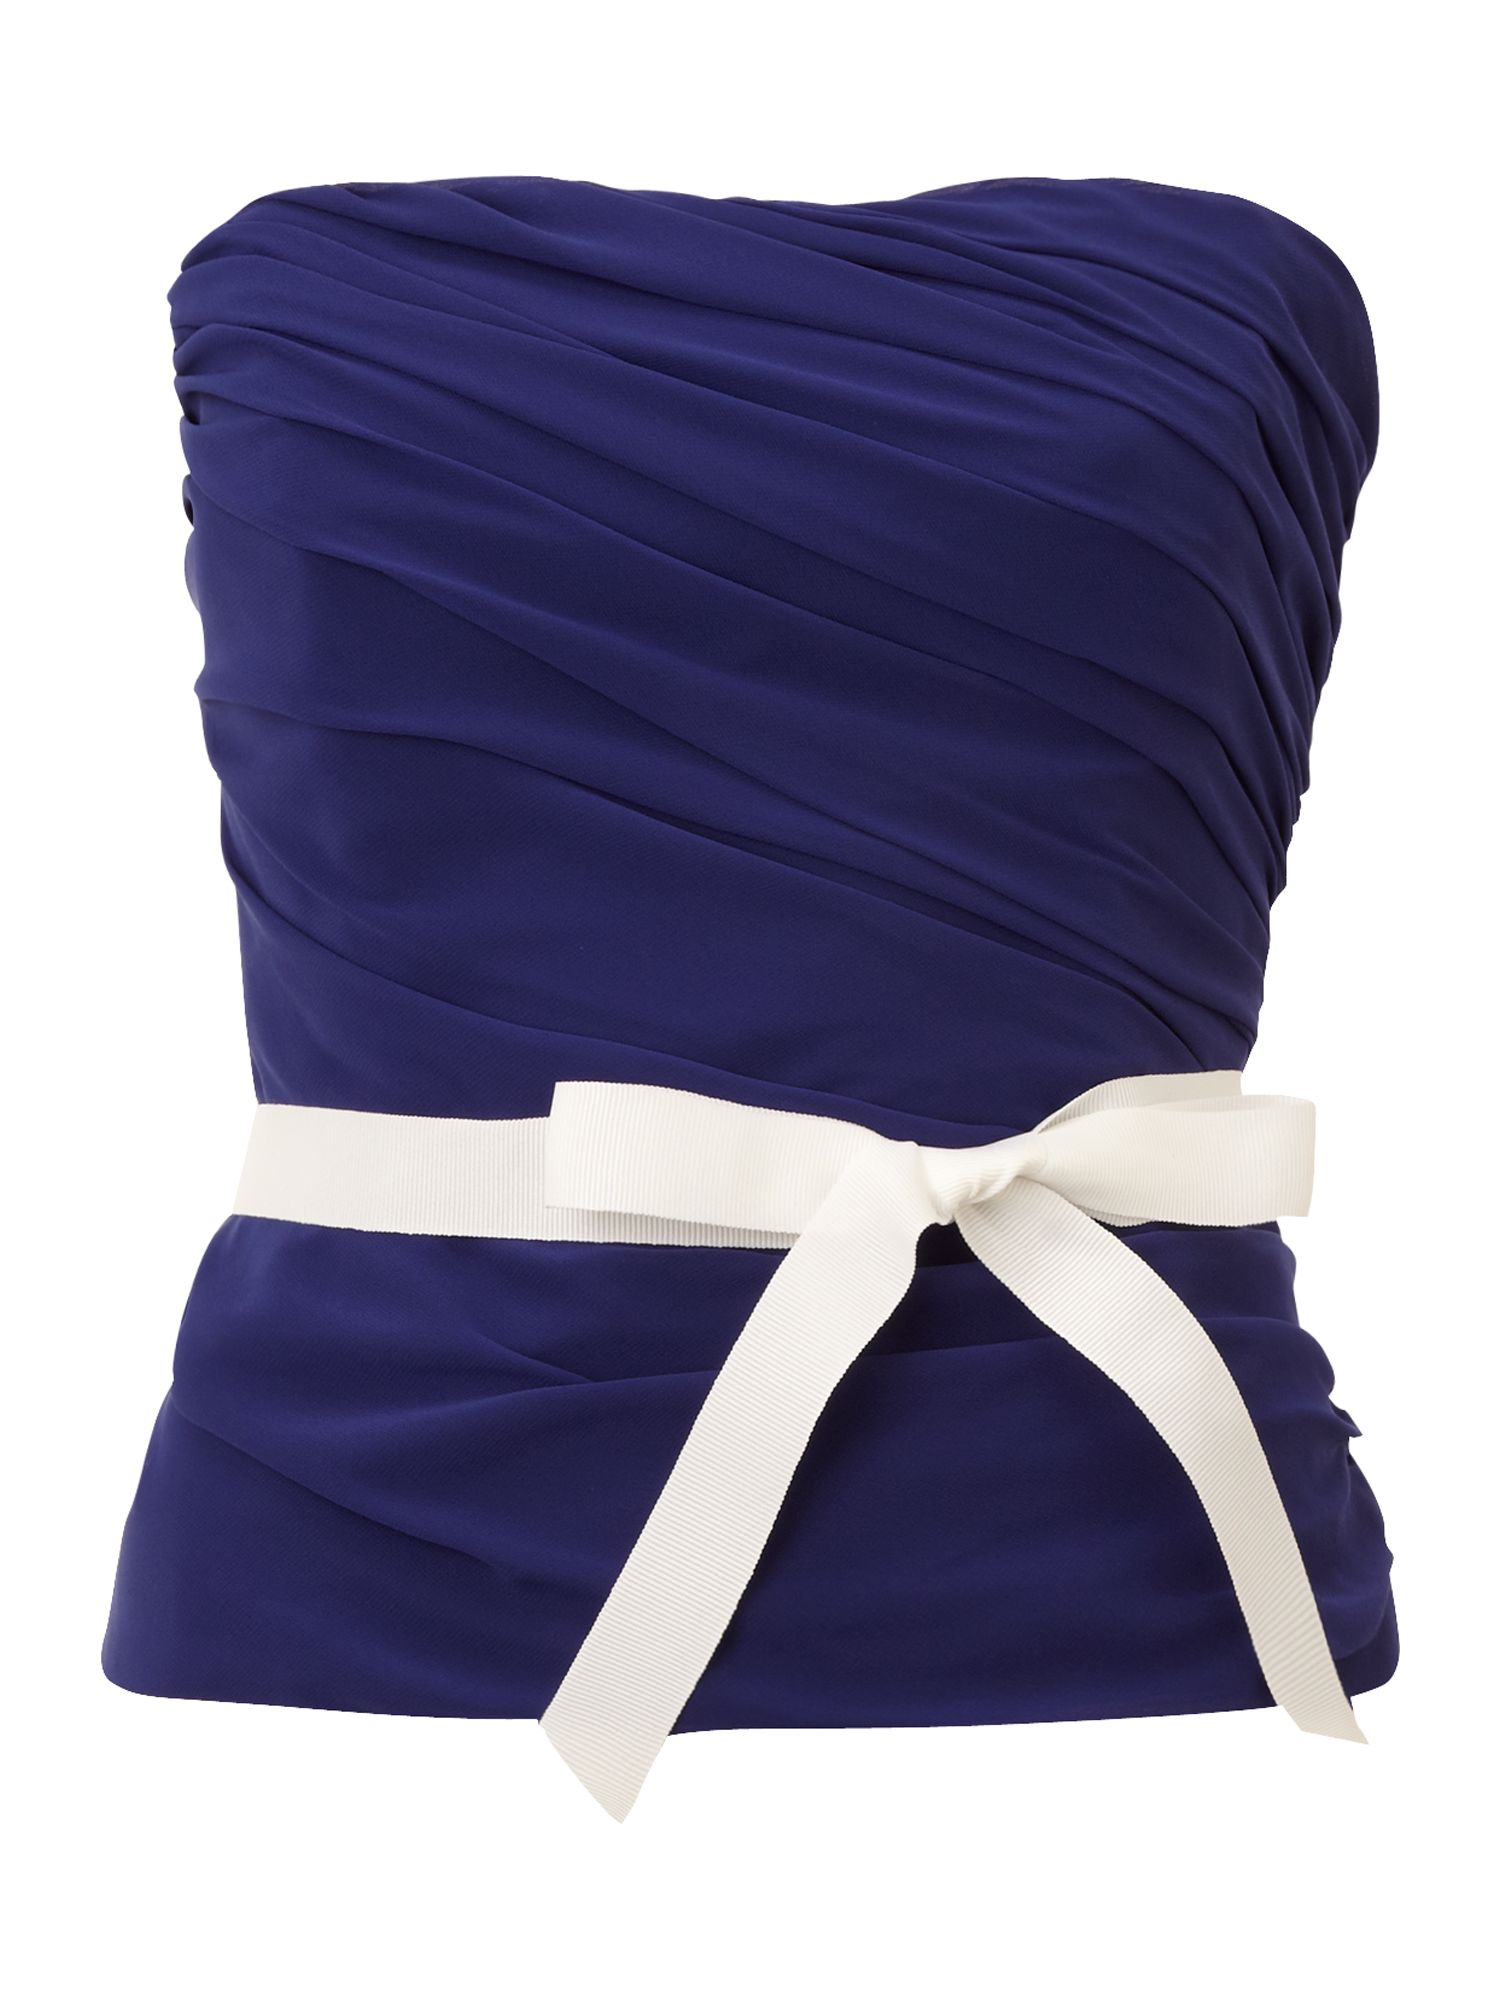 Bustier top with grosgrain tie